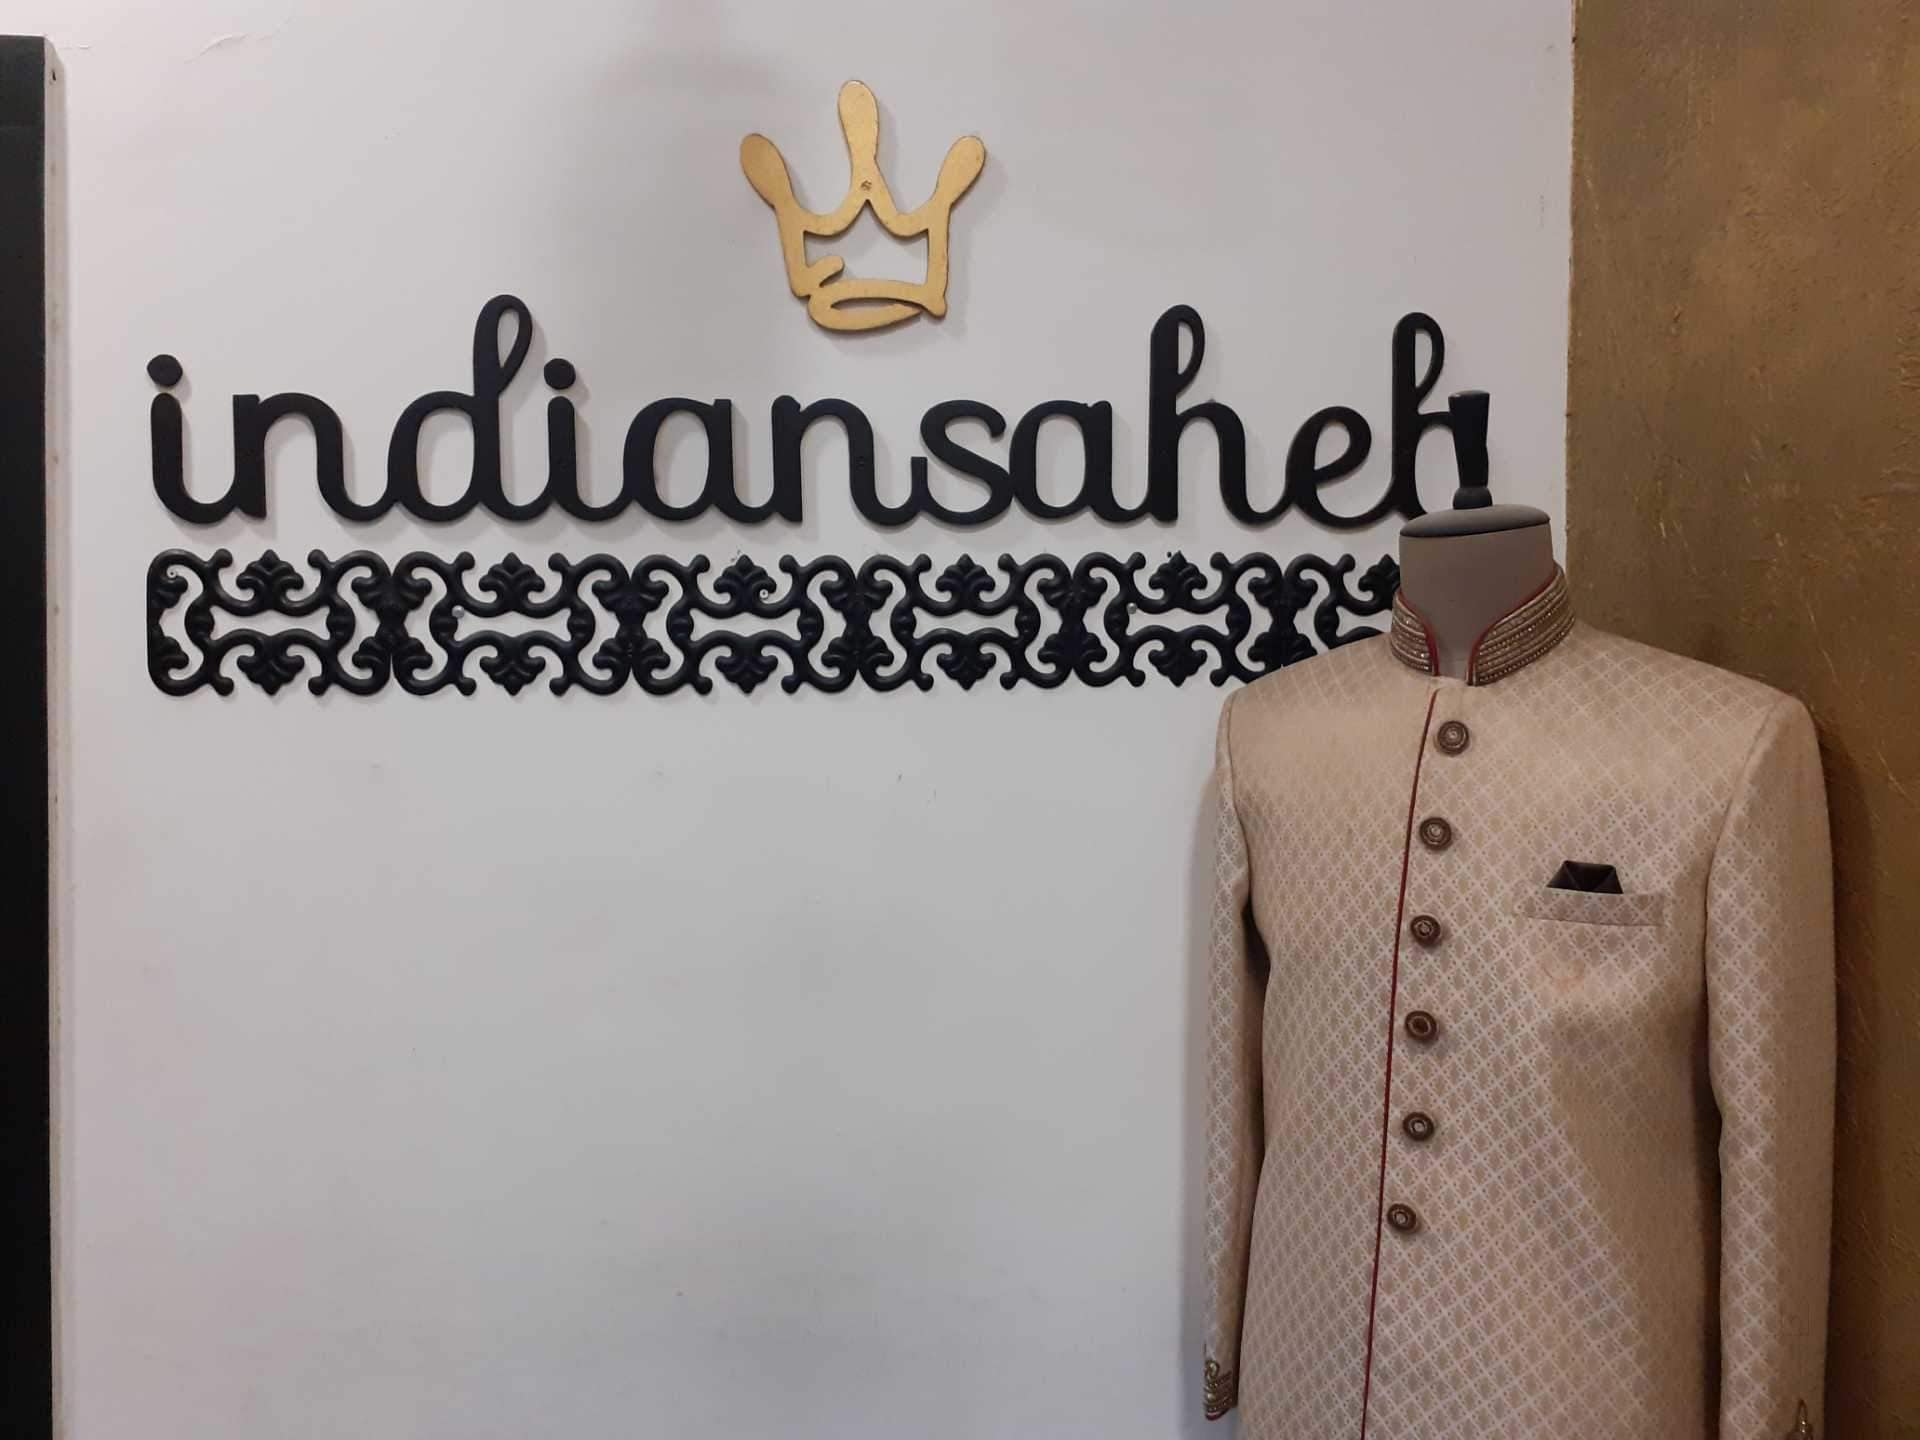 Indiansaheb Secunderabad Fashion Designer Stores In Hyderabad Justdial